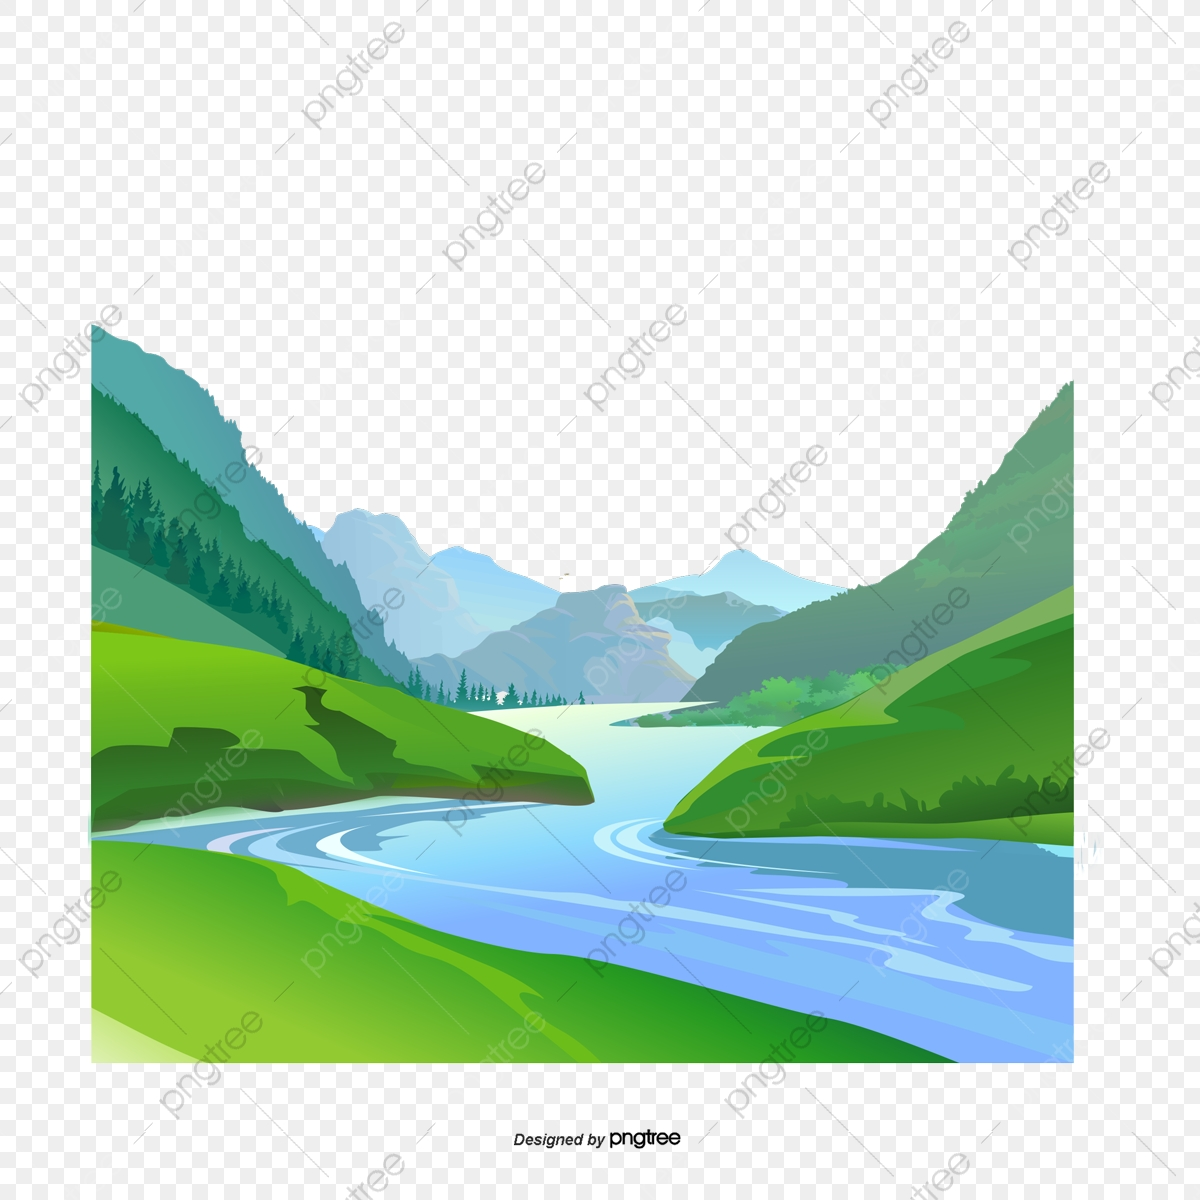 natural scenery small rivers and rivers vector illustration small river png transparent clipart image and psd file for free download https pngtree com freepng natural scenery small rivers and rivers 3239281 html